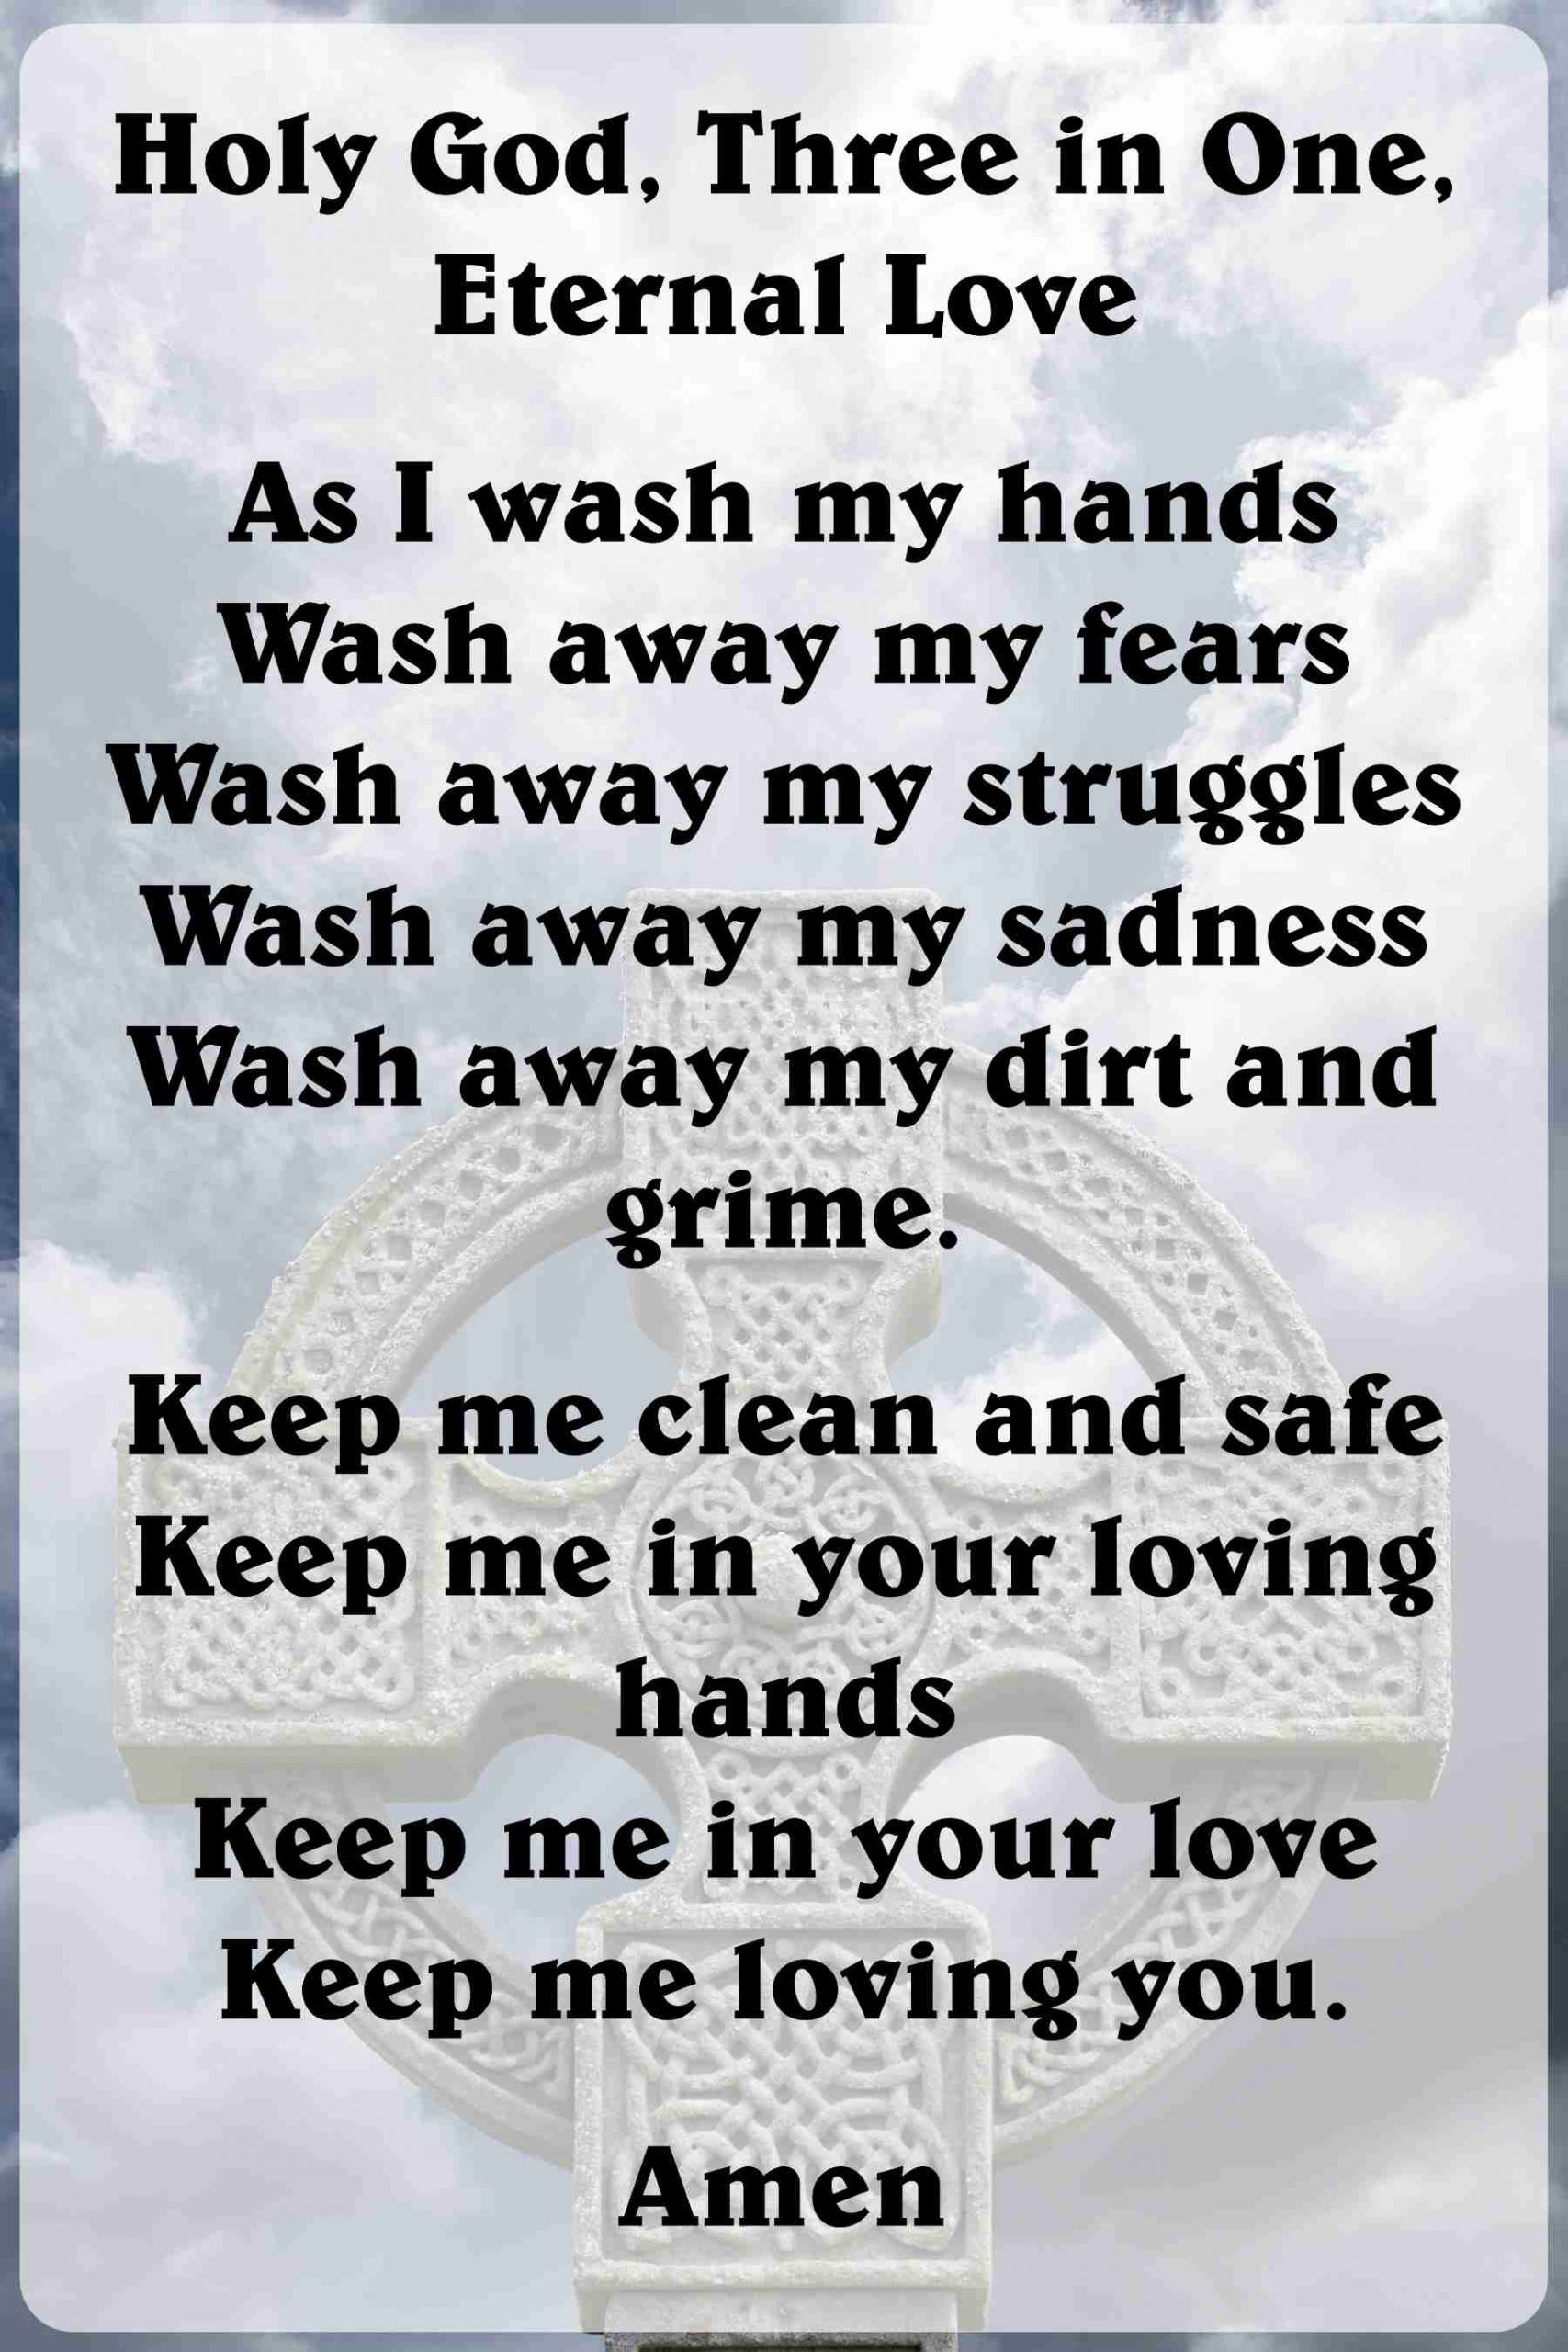 As I Wash My Hands by Bruce Allinson - As I Wash My Hands